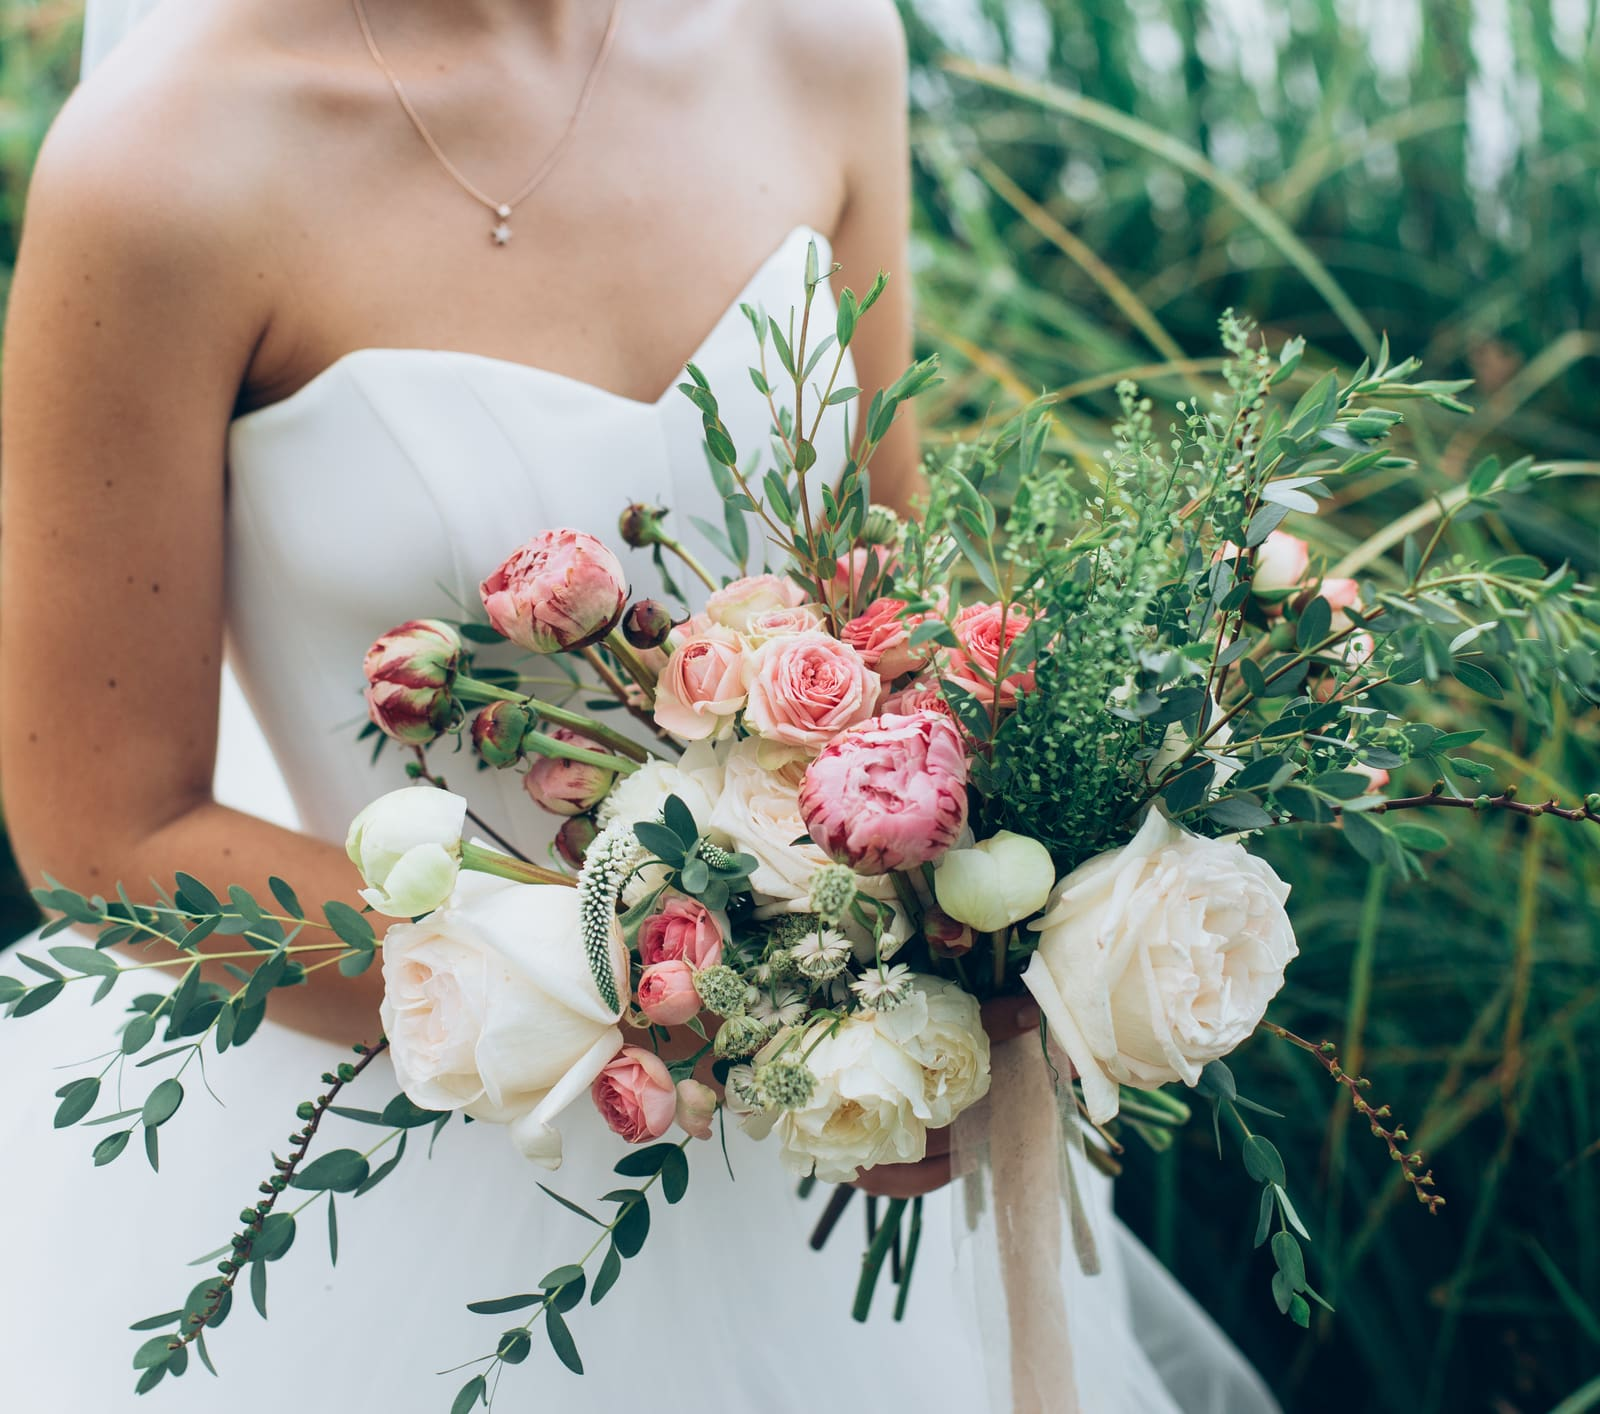 average cost of wedding flowers - valuepenguin